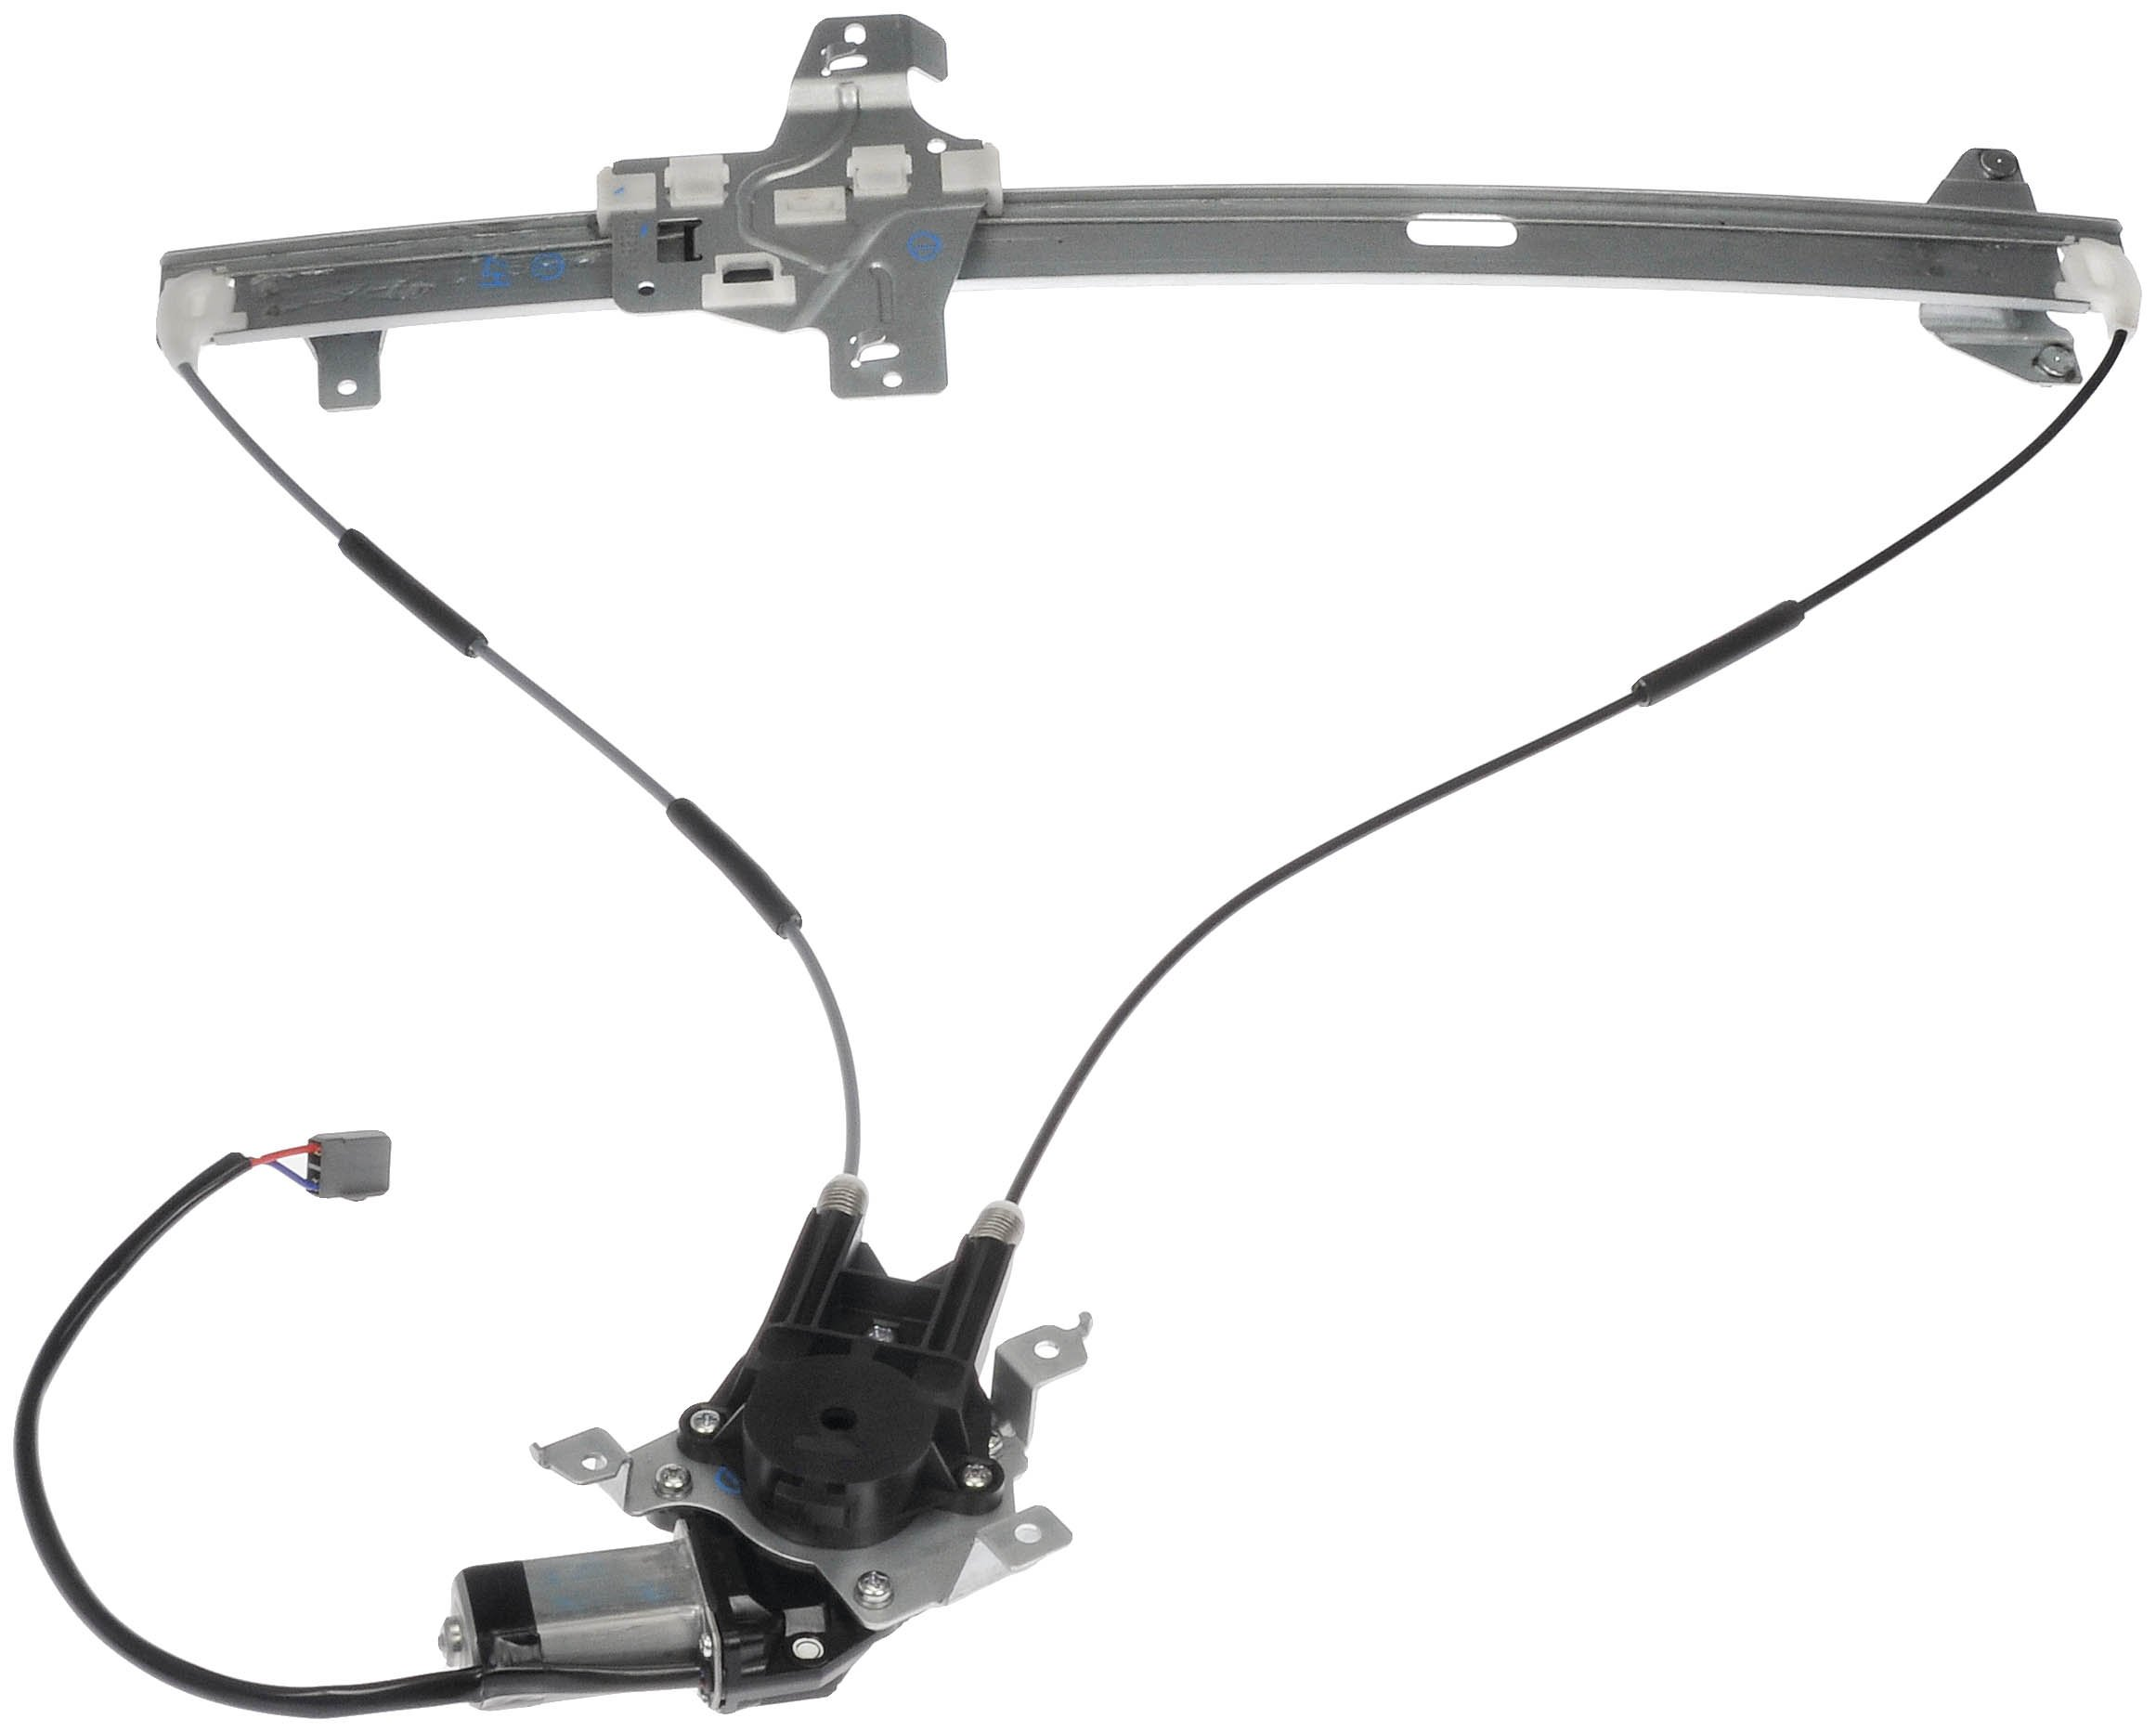 Dorman 741-586 Front Driver Side Replacement Power Window Regulator with Motor for Ford E Series Van by Dorman